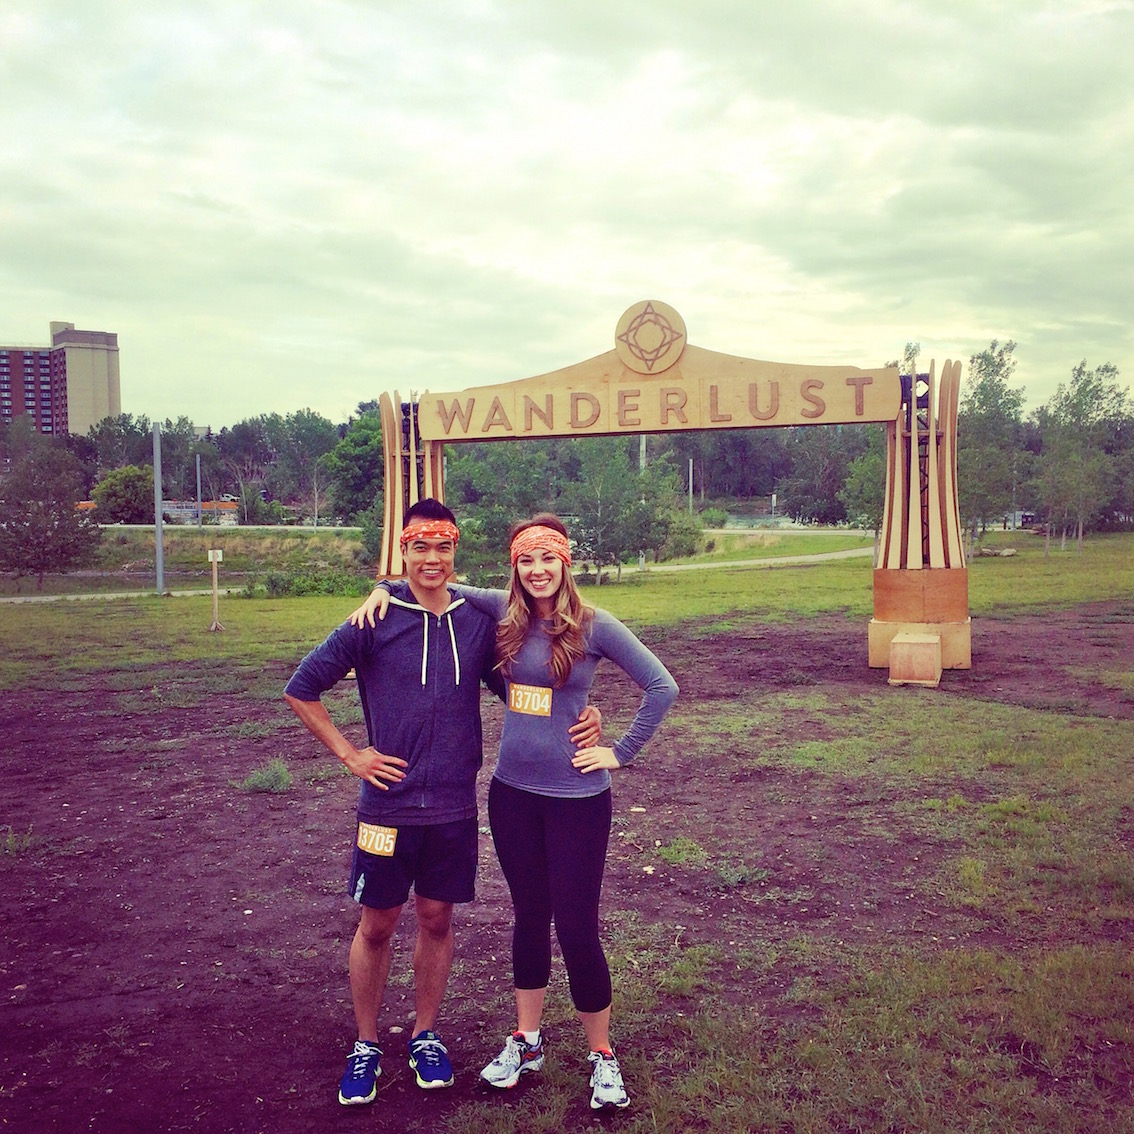 My summer started off with participating in Wanderlust 108, which combined a 5k run with yoga and meditation. Me and my friend Erin are seen here gearing up for the start of the event, held in June at Fort Calgary.